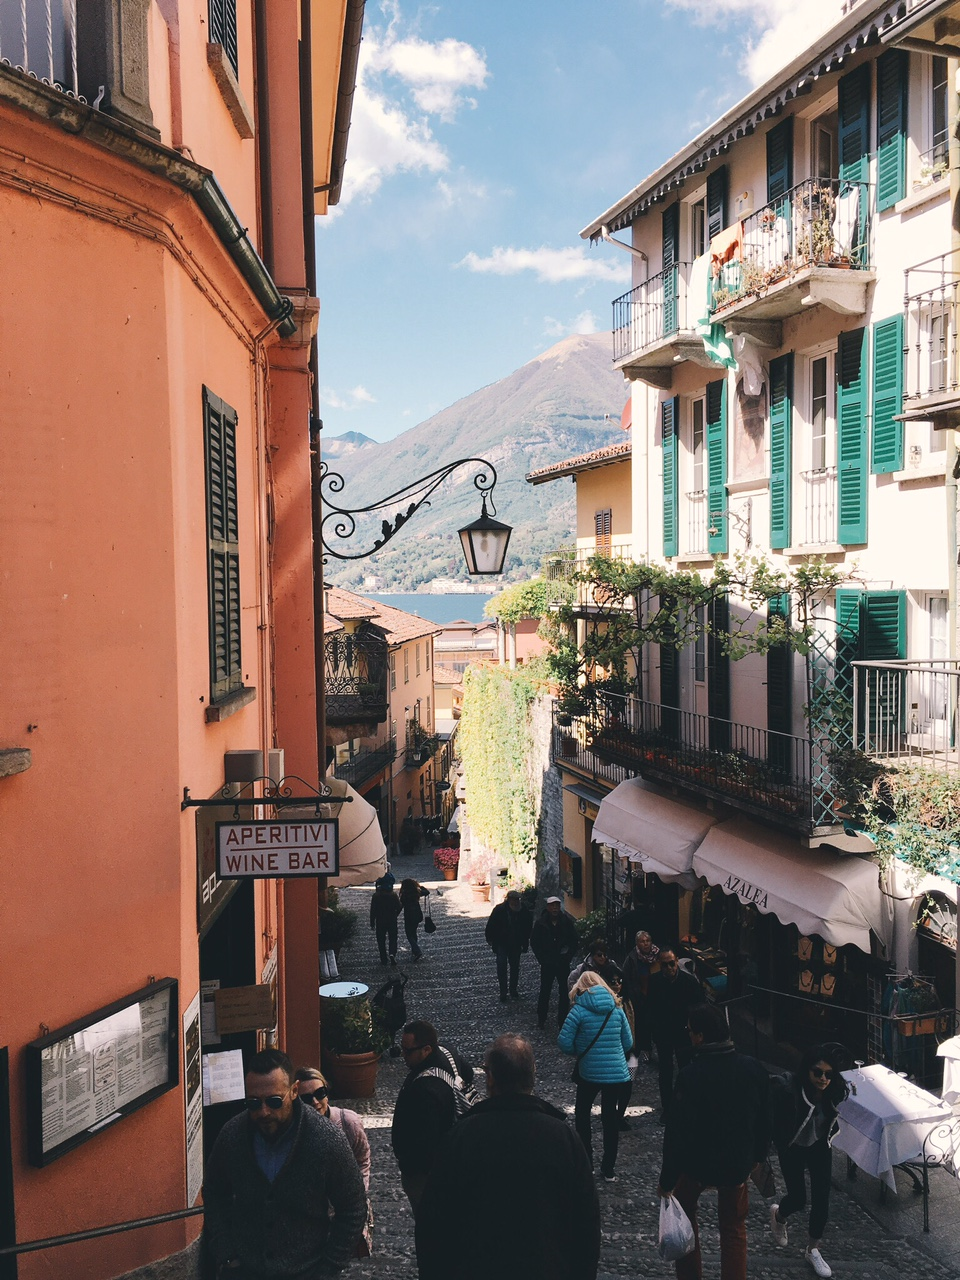 View of shops and restaurants in Bellagio hill town